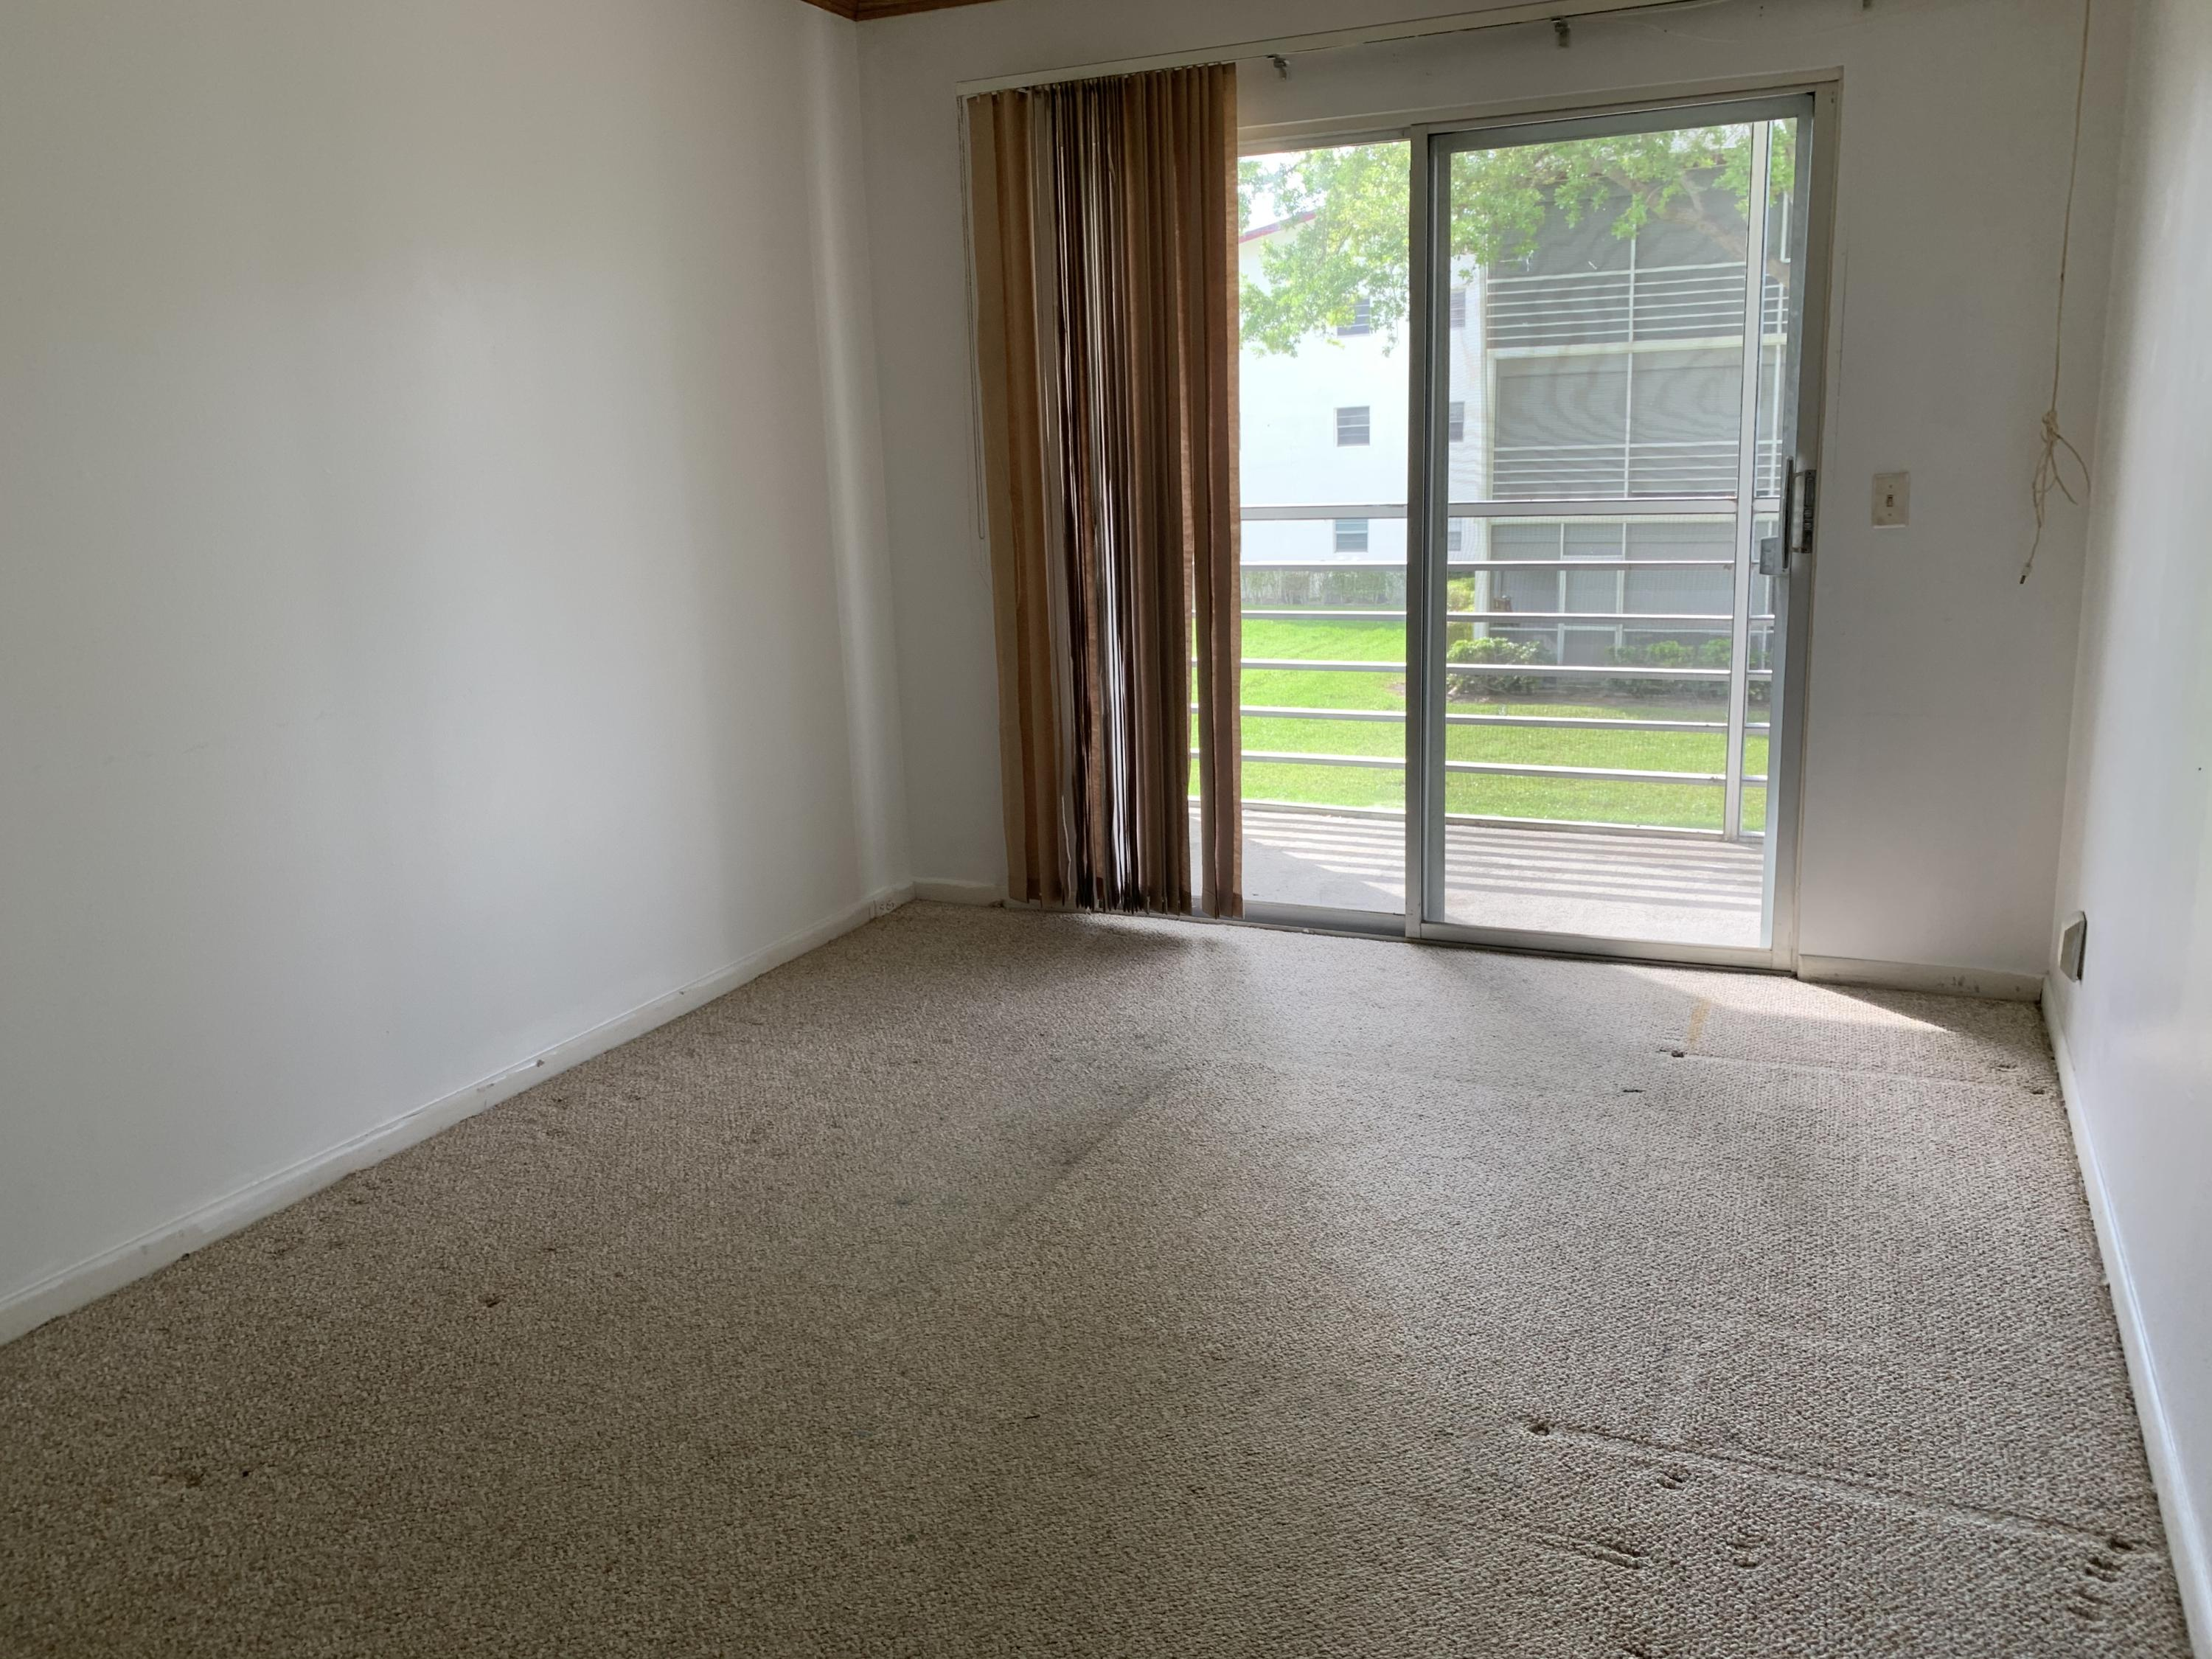 480 Fanshaw L, Boca Raton, Florida 33434, 2 Bedrooms Bedrooms, ,1 BathroomBathrooms,Residential,For Sale,Fanshaw L,RX-10603968